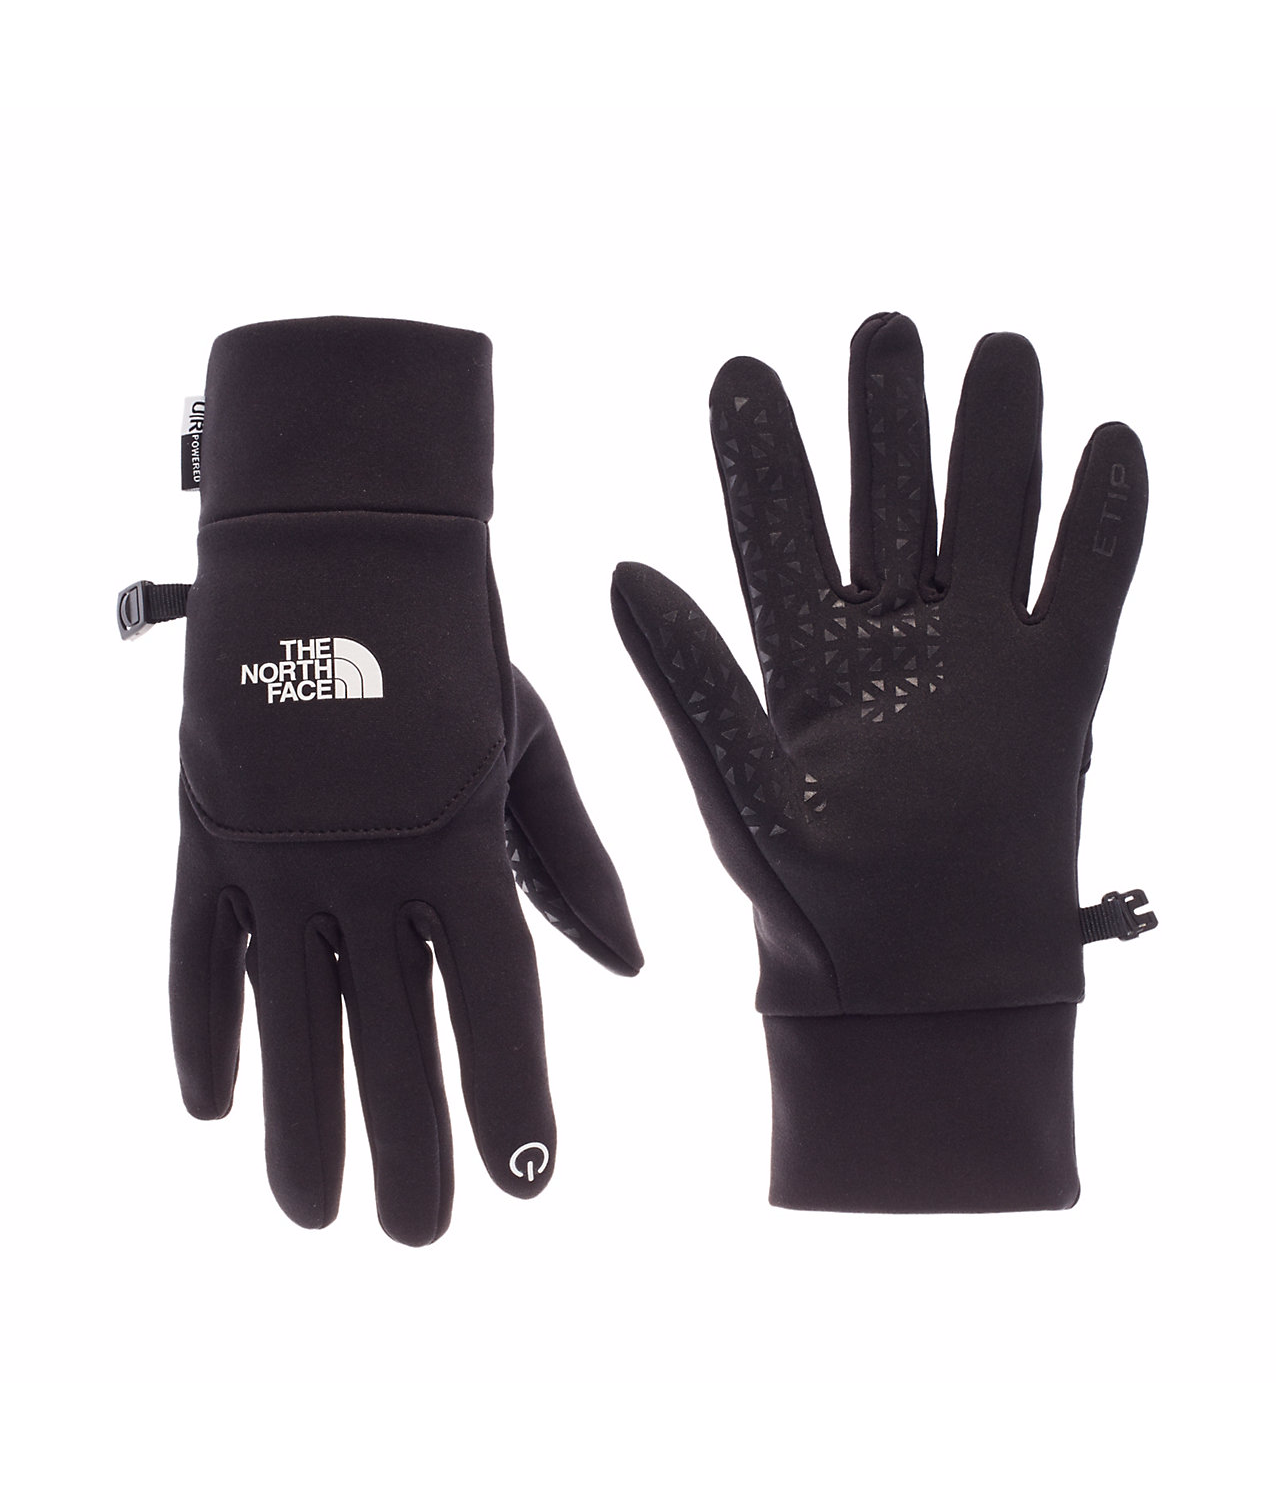 NORTH FACE - ETIP GLOVES, BLACK